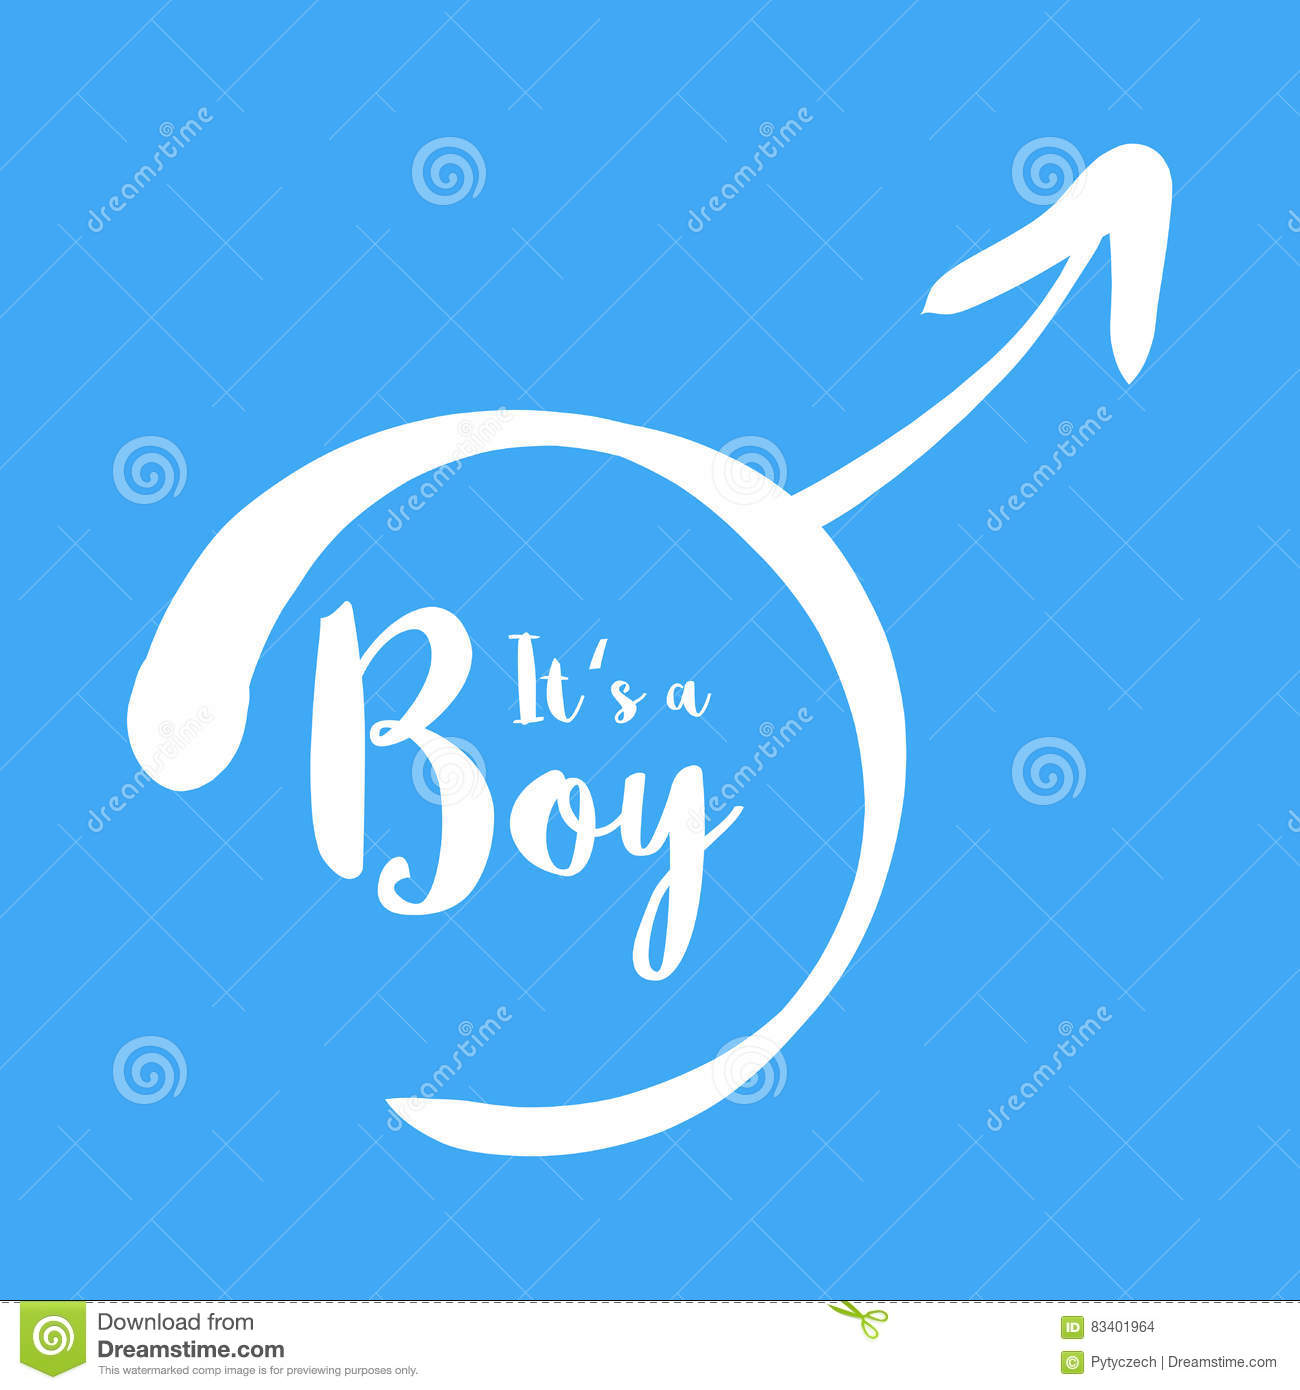 baby shower card its a boy flat design style vector illustration 37698790. Black Bedroom Furniture Sets. Home Design Ideas